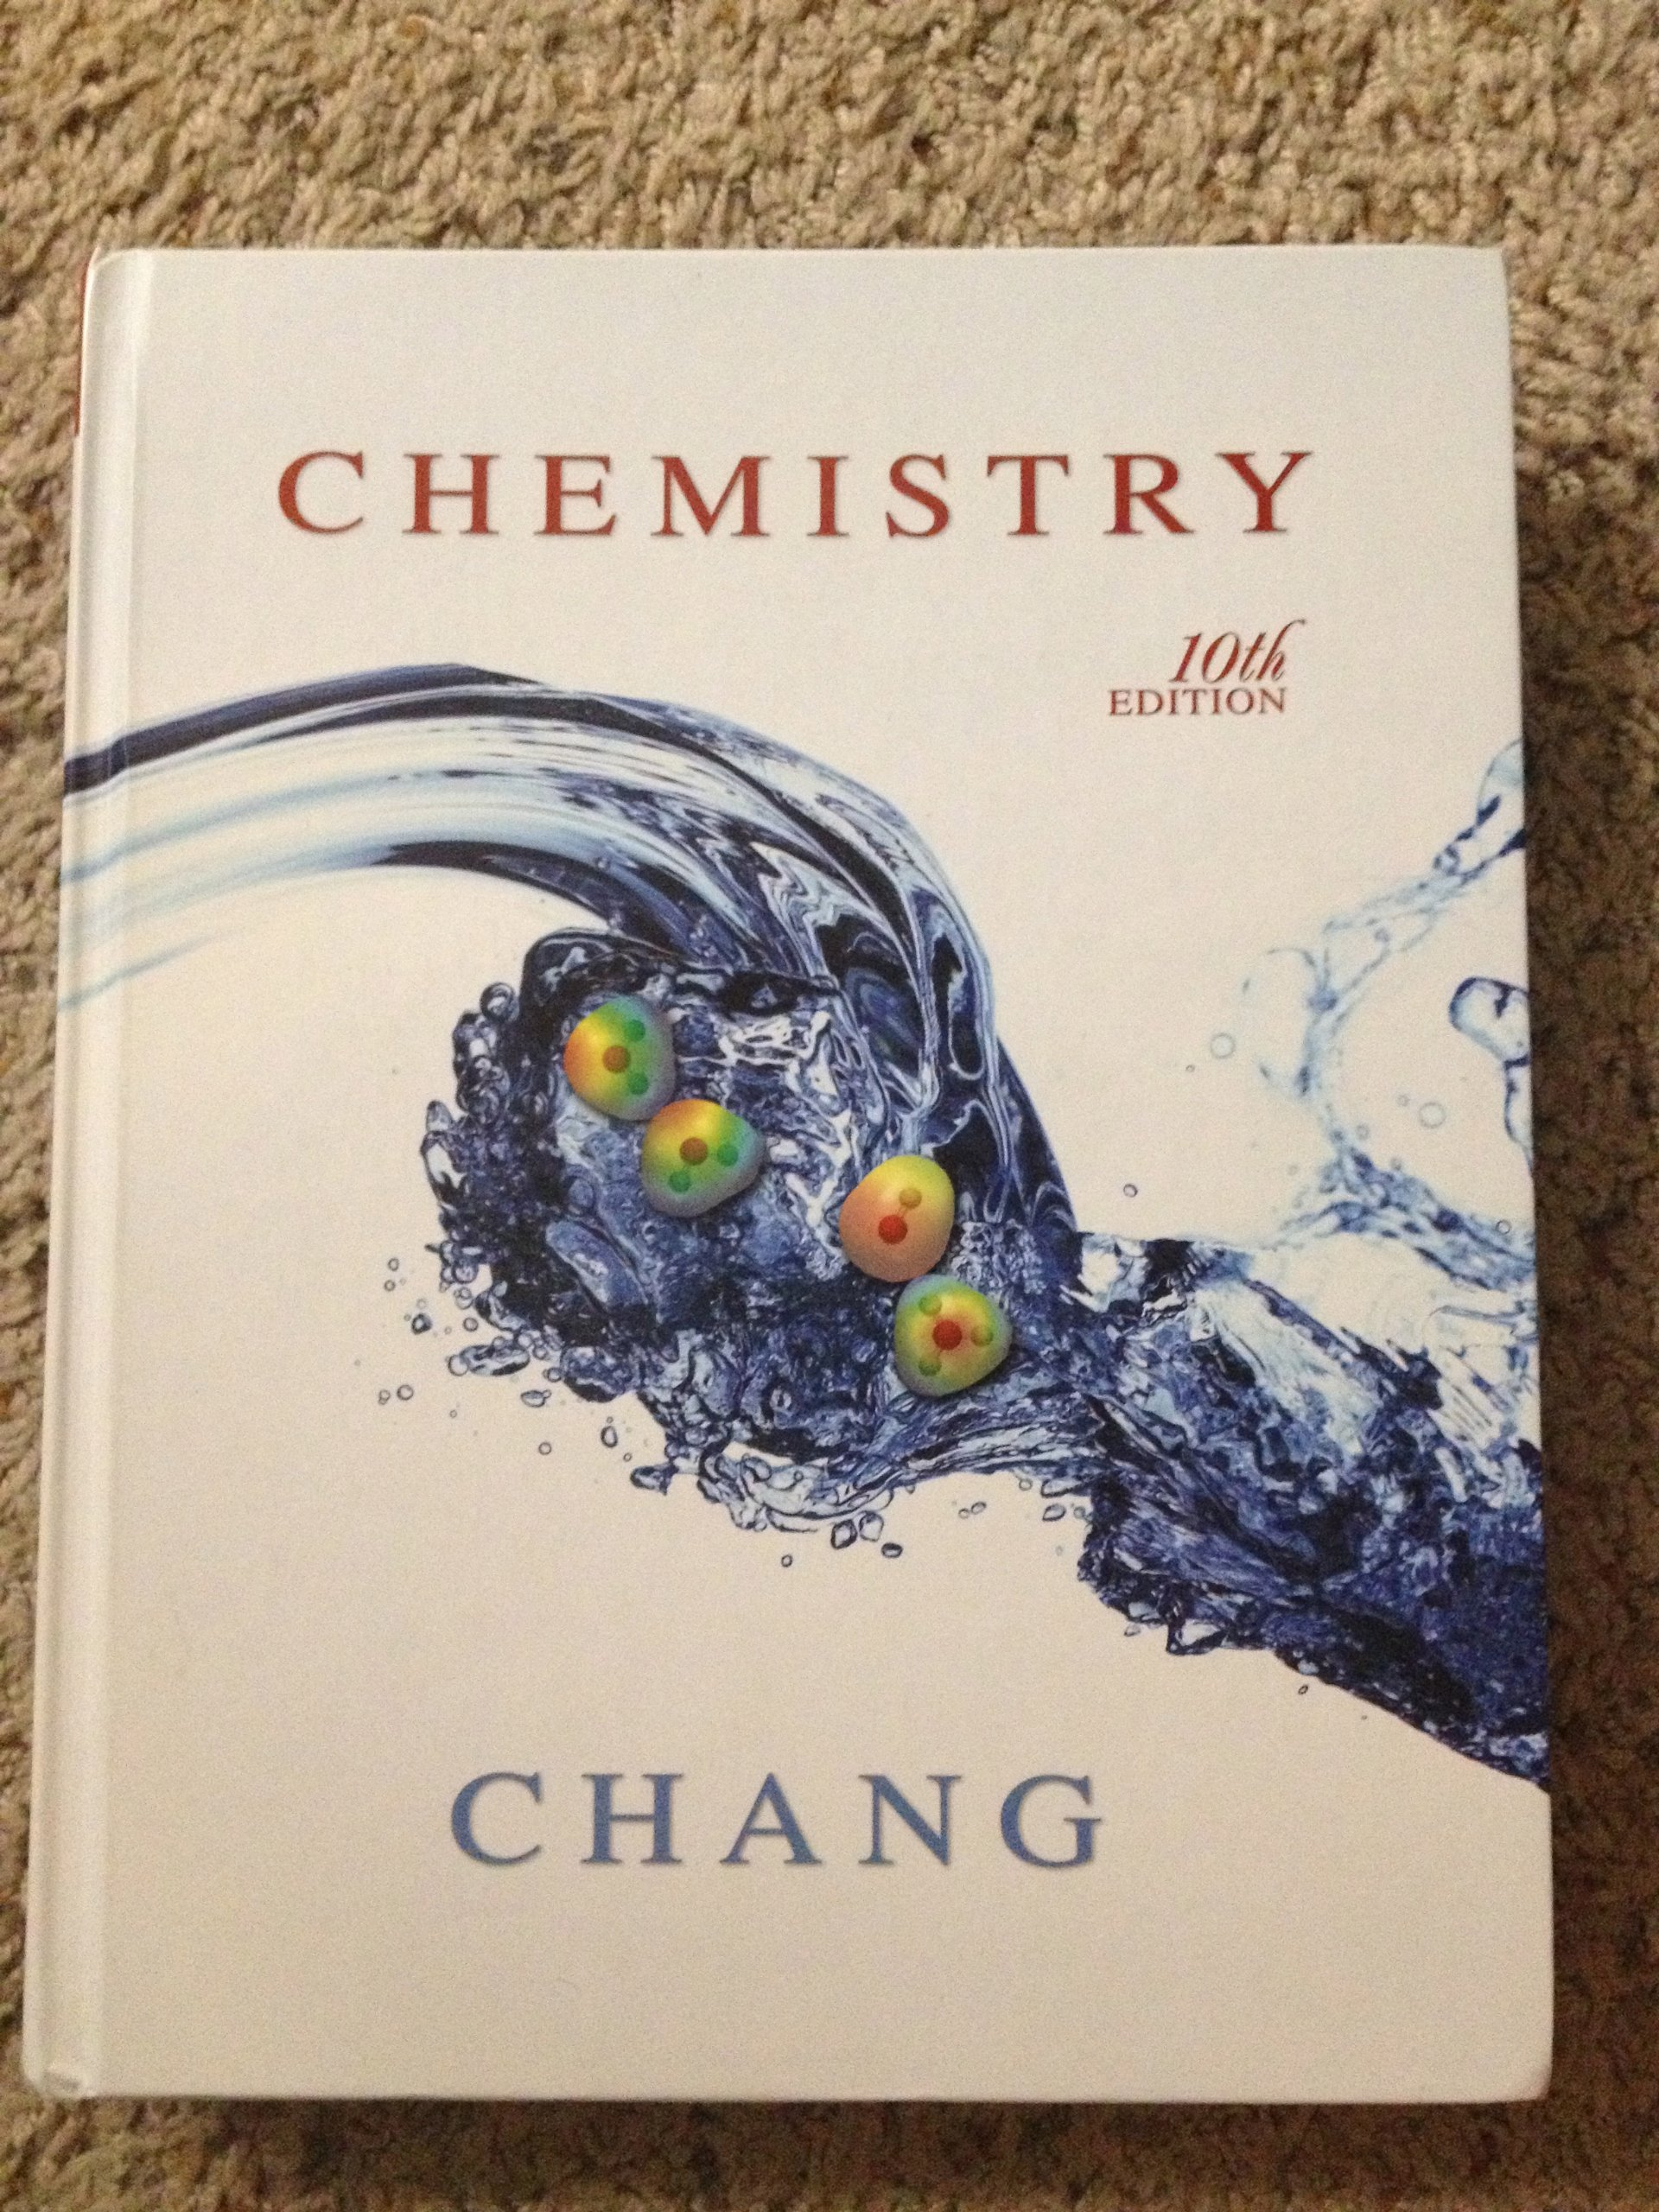 Chemistry solutions manual chang 10th edition pdf youtube.